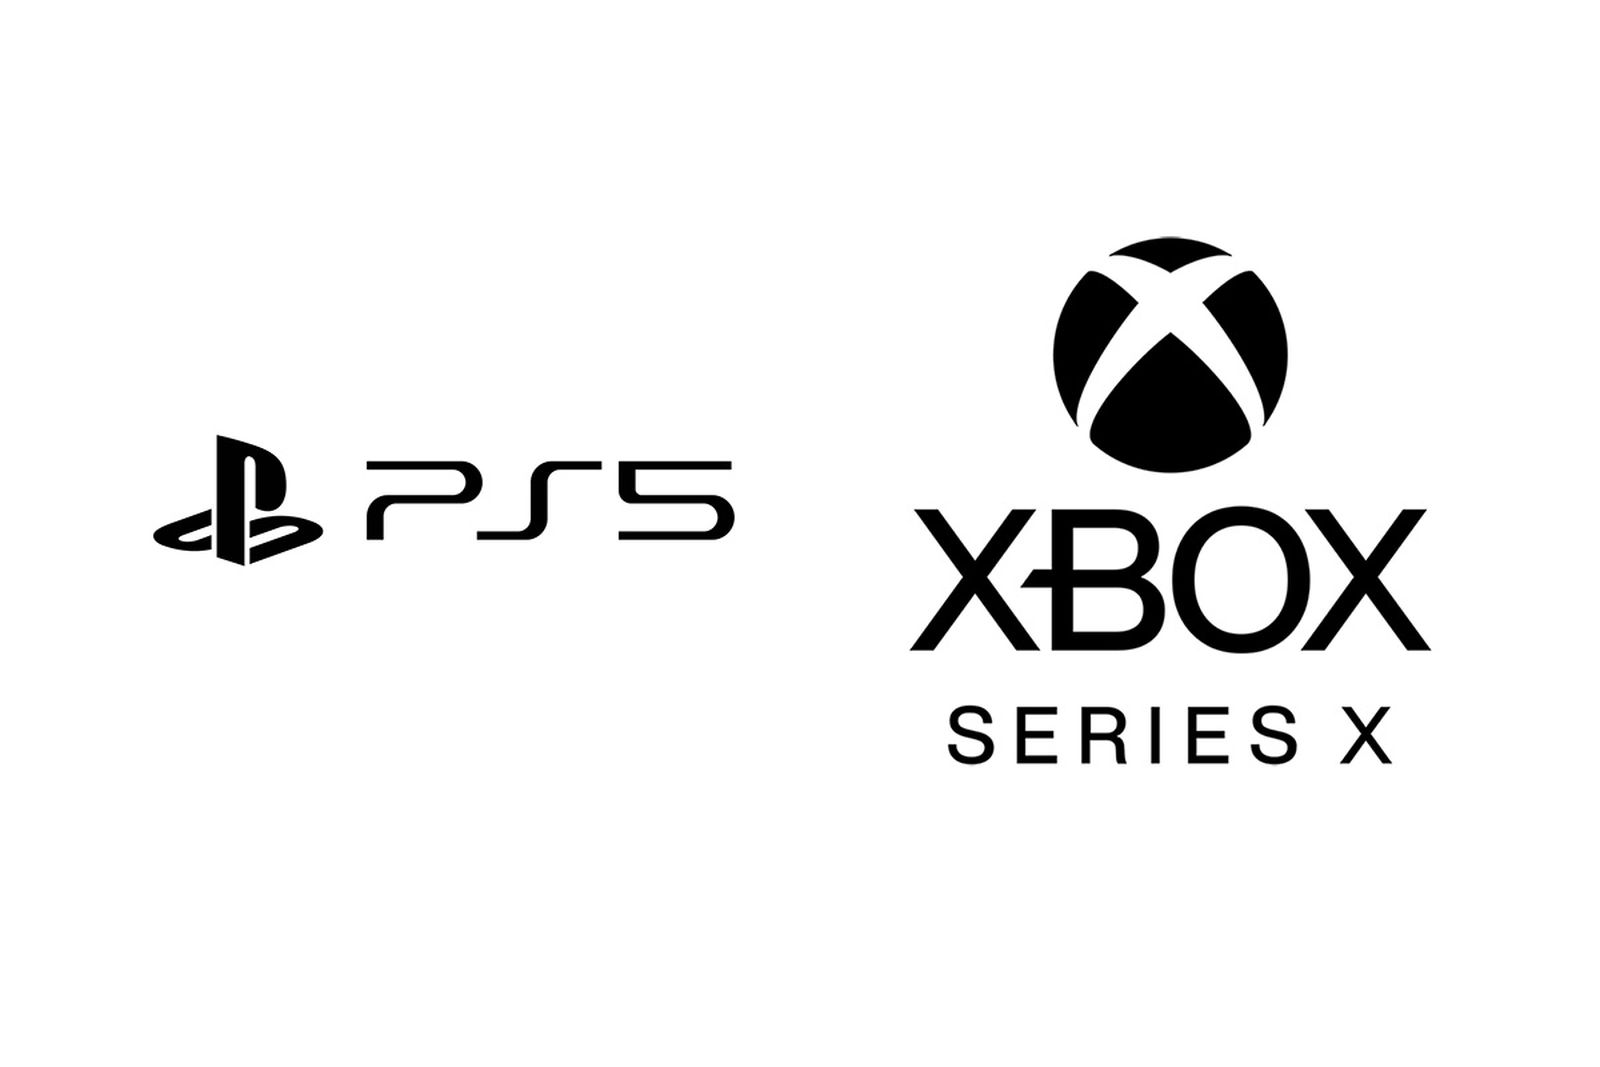 Comparing The Specs Of The Playstation 5 And Xbox Series X